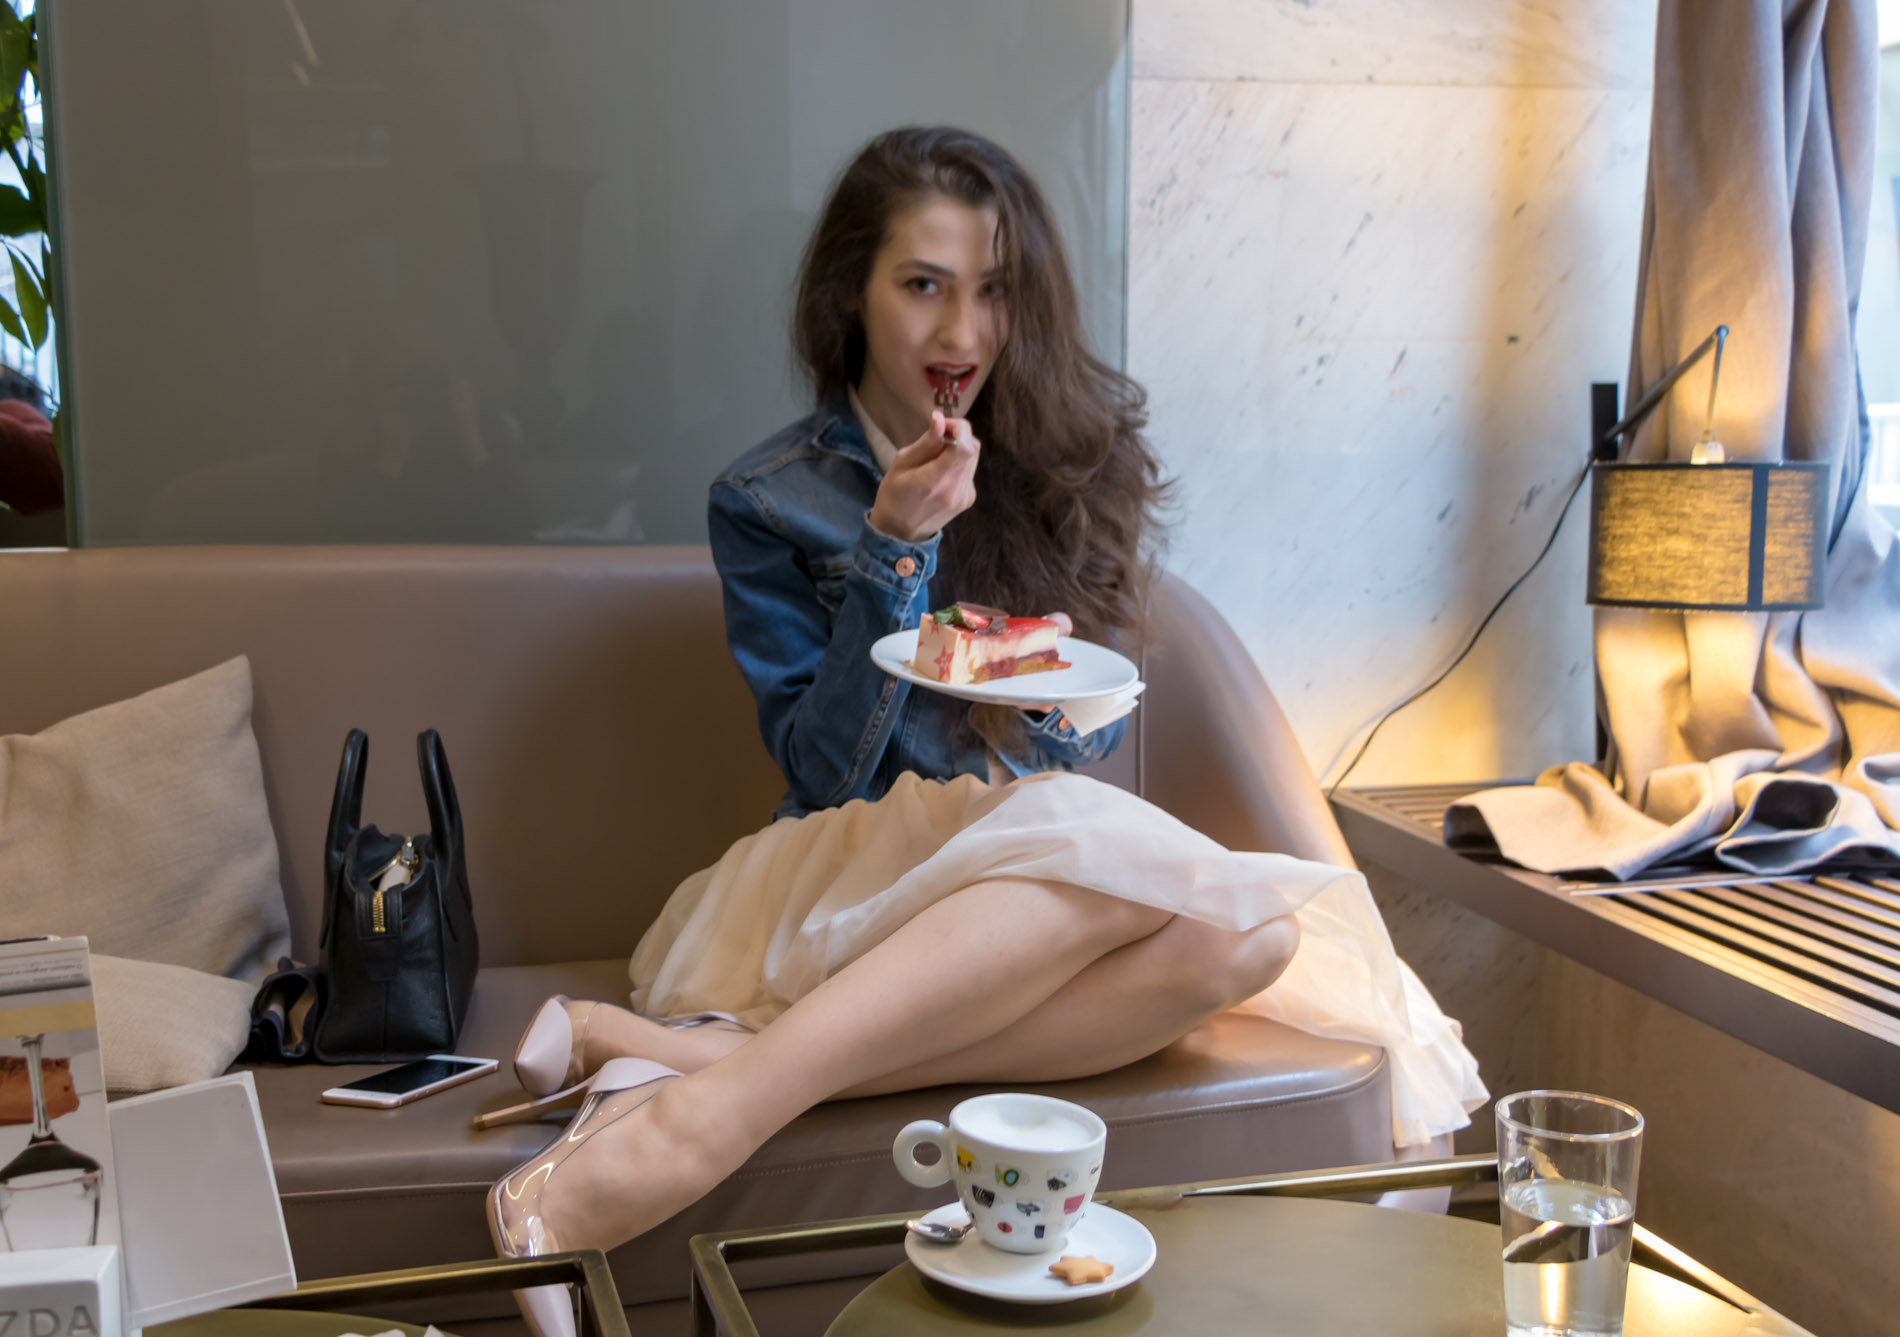 Fashion Blogger Veronika Lipar of Brunette from Wall Street dressed in blush Gianvito Rossi Plexi 100 leather and PVC pump shoes, blush tulle skirt from Zara, blue denim jacket from H&M while eating cake